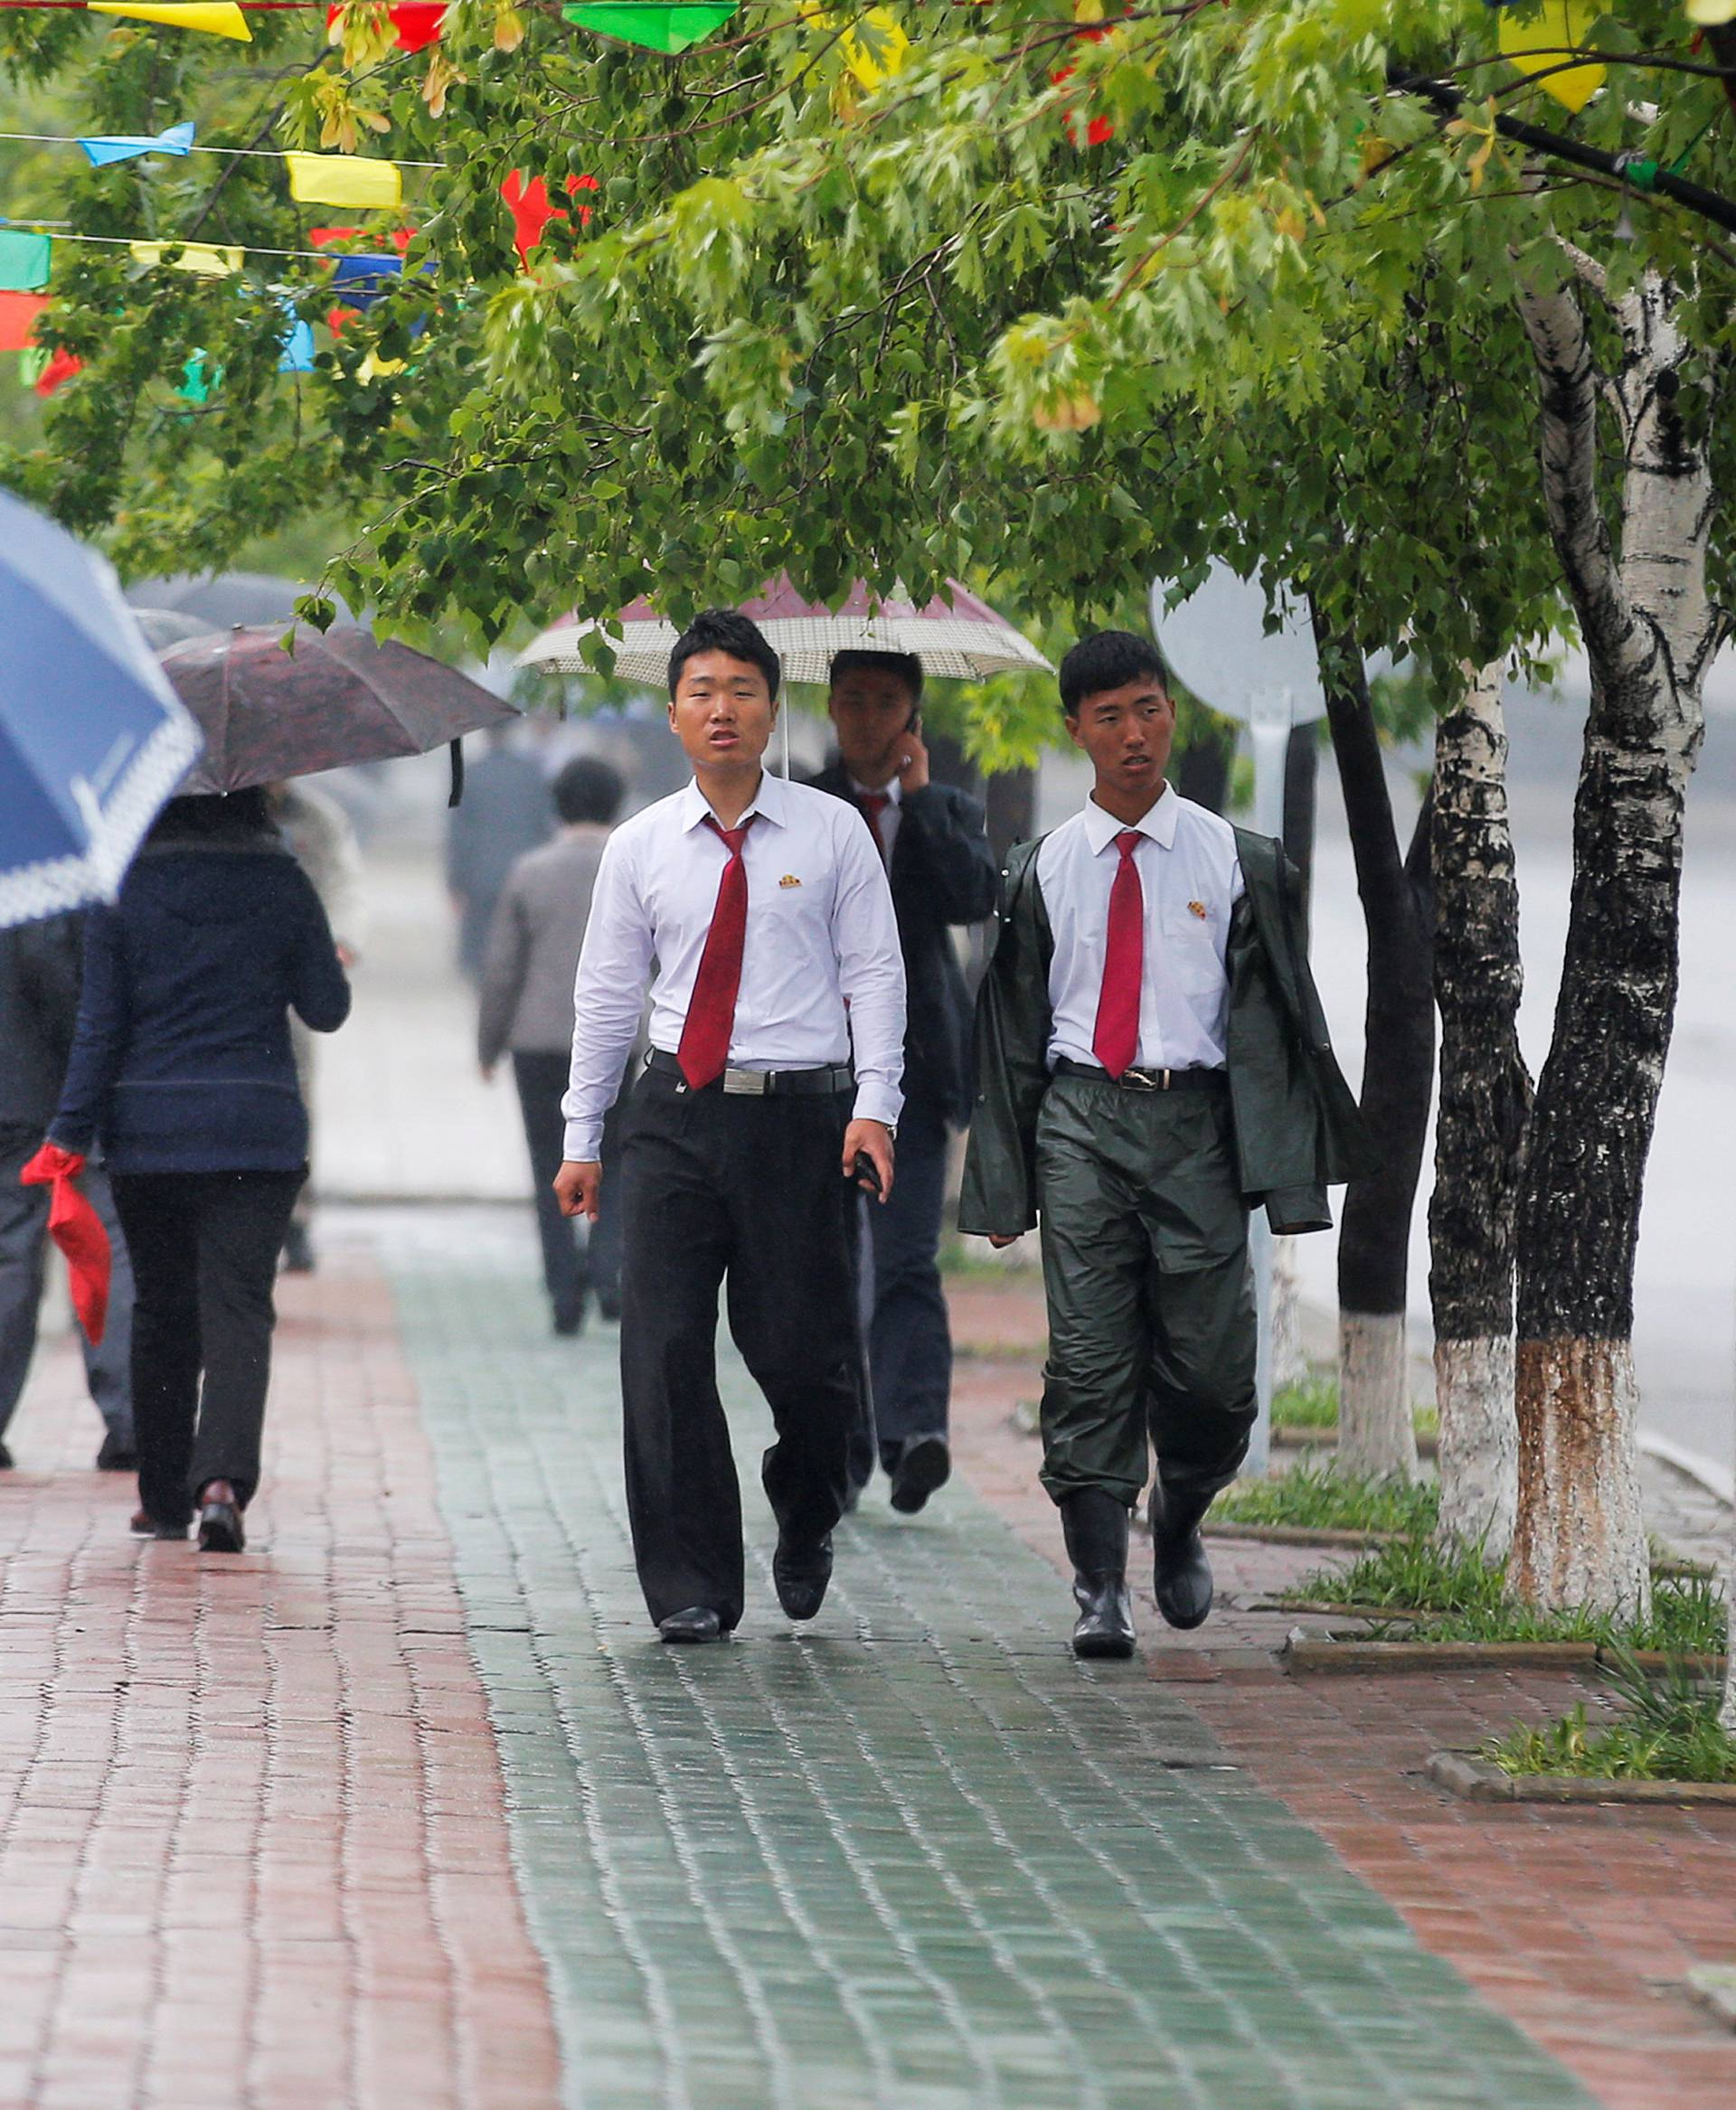 People walk in the rain near April 25 House of Culture, the venue of Workers' Party of Korea (WPK) congress in Pyongyang